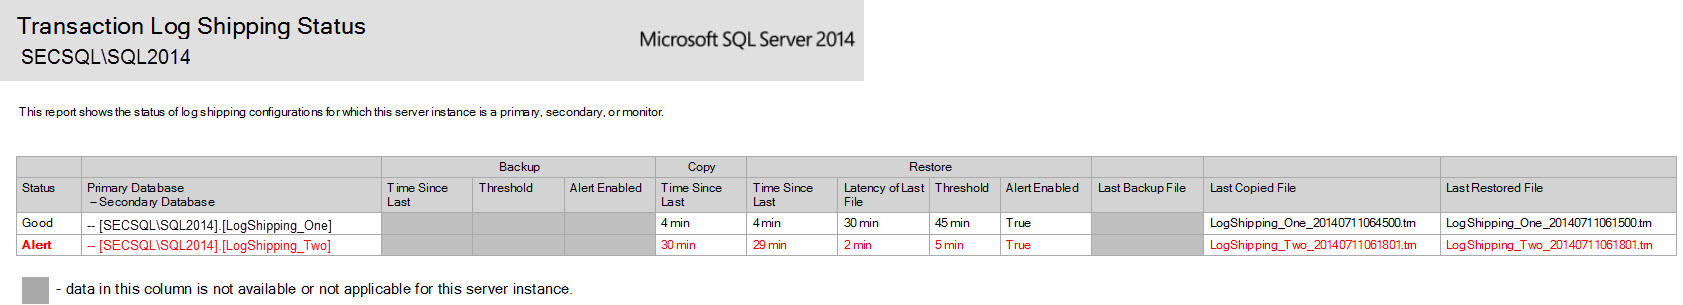 SQL SERVER - SSMS: Transaction Log Shipping Status Report reportlaunch3